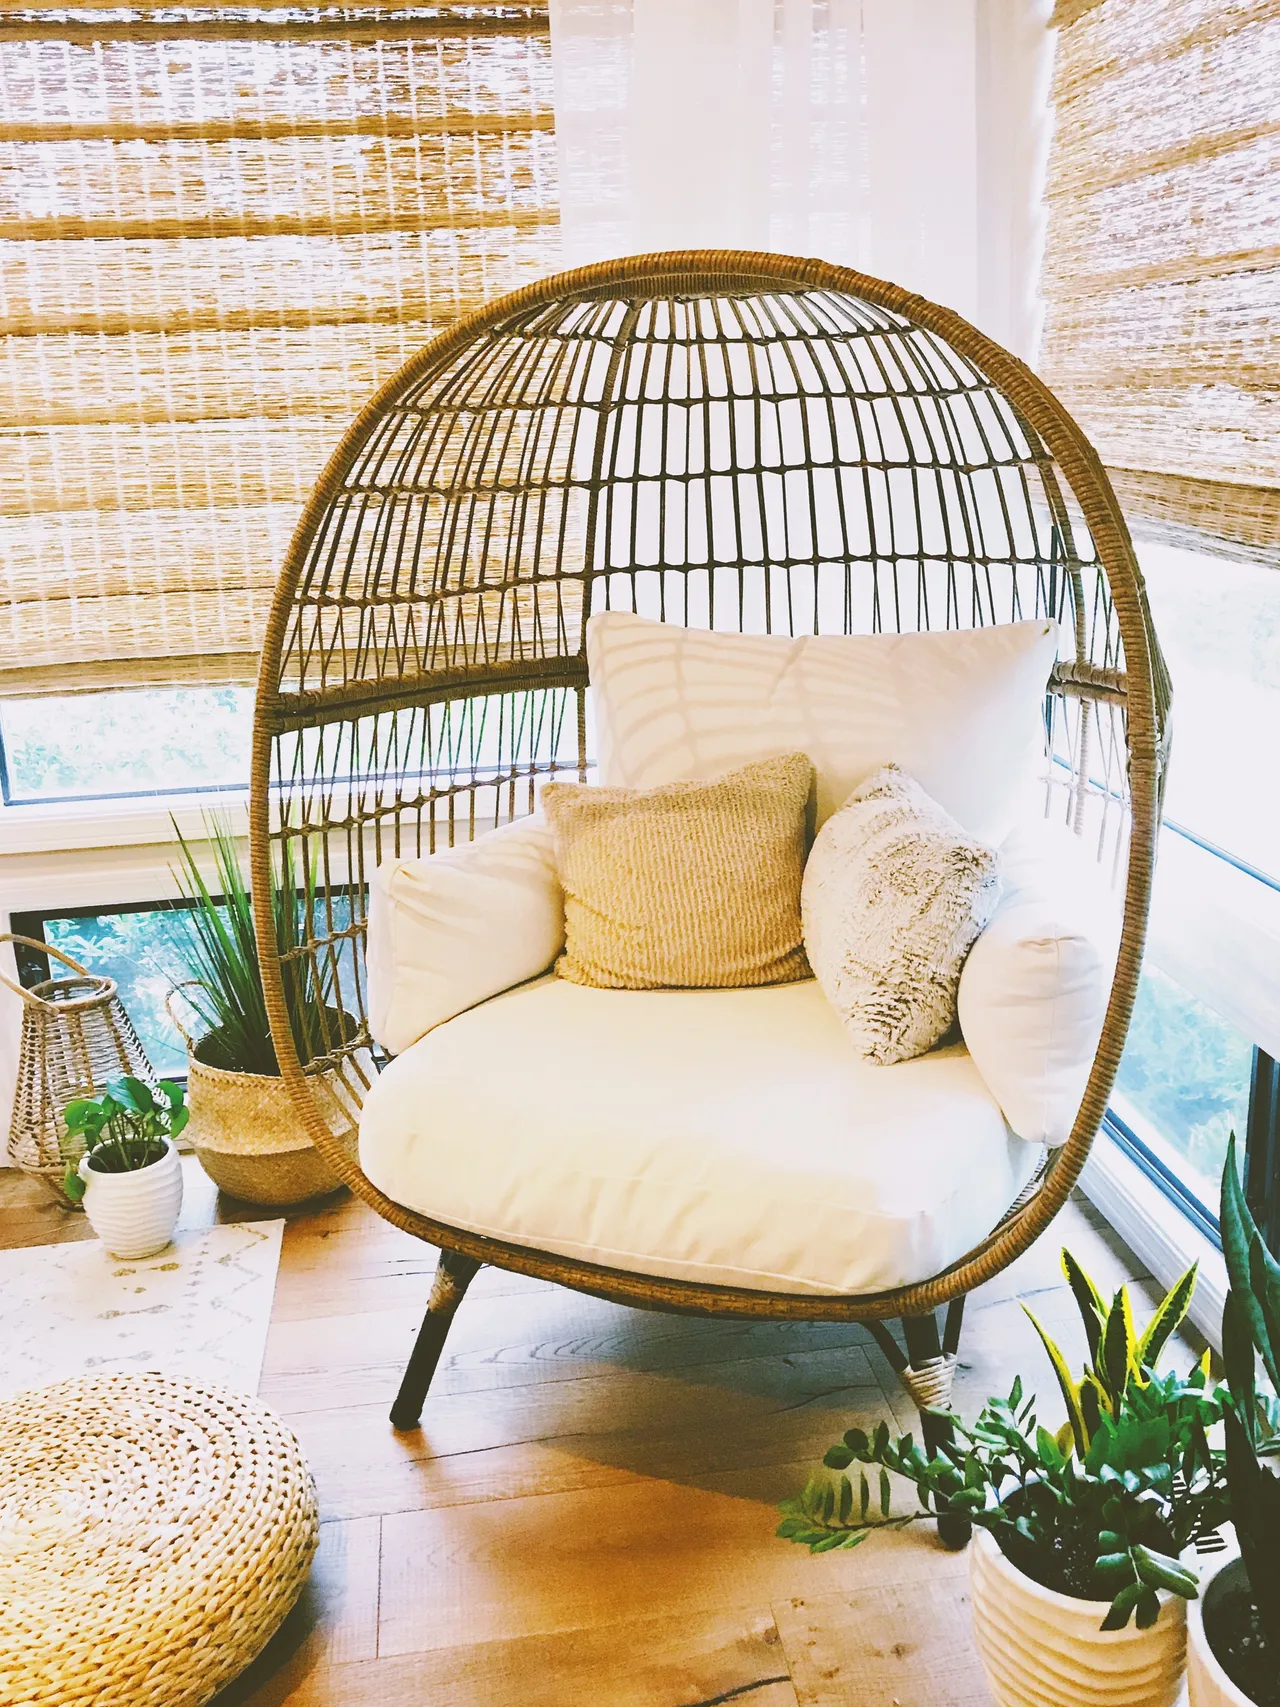 This Boho Chic Rattan Egg Chair is the perfect indoor nest